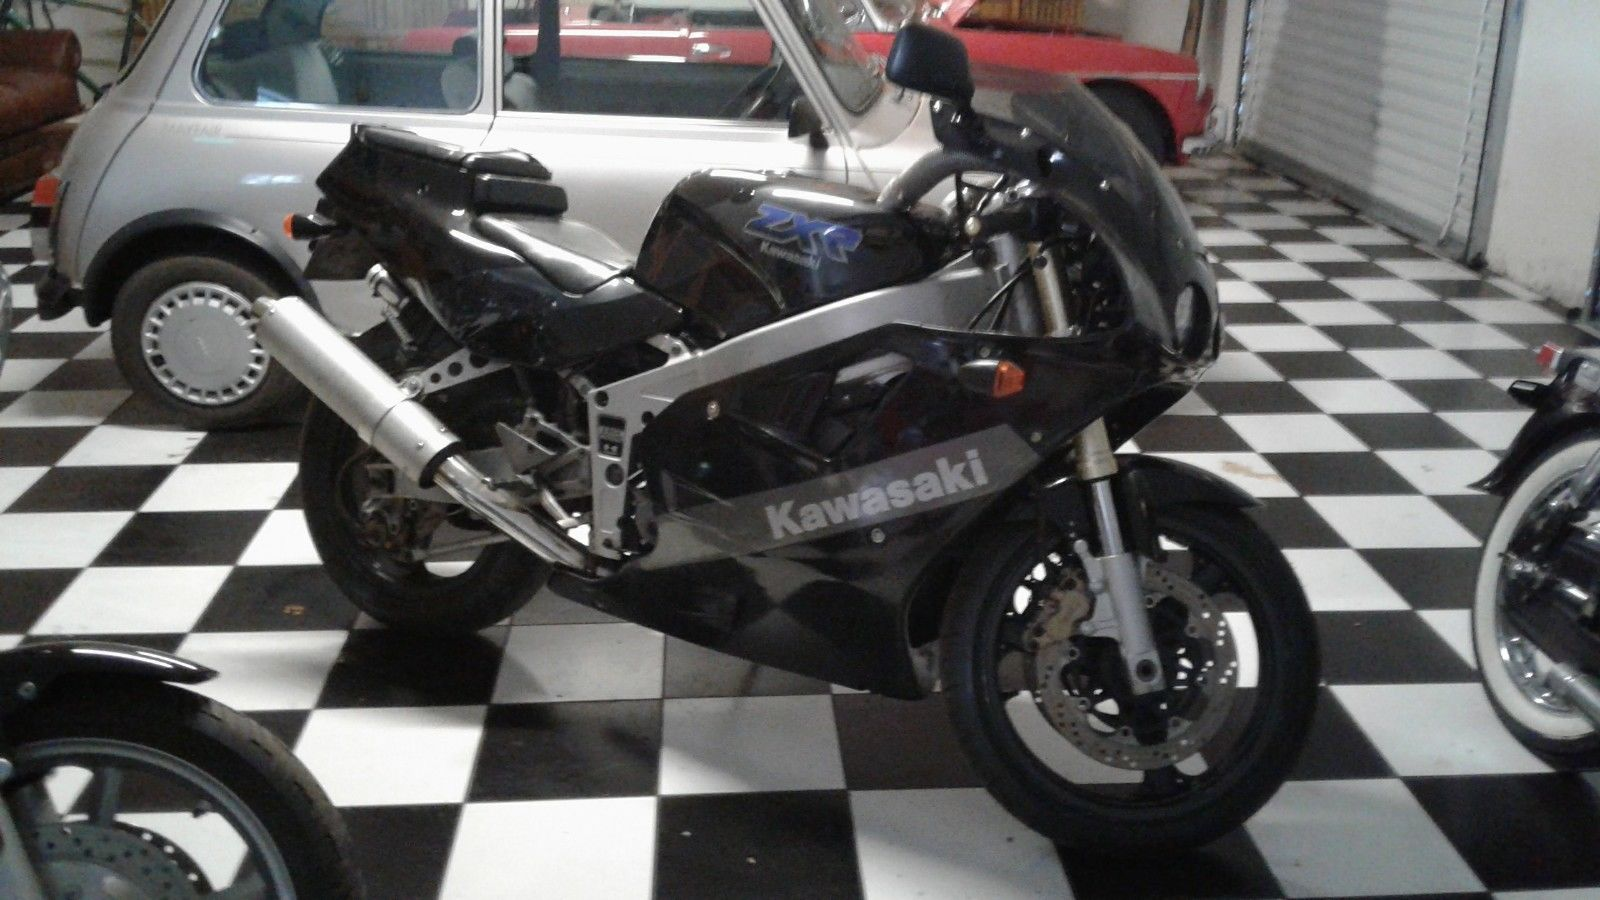 Bantamweight Sportbike 1990 Kawasaki ZXR400 For Sale